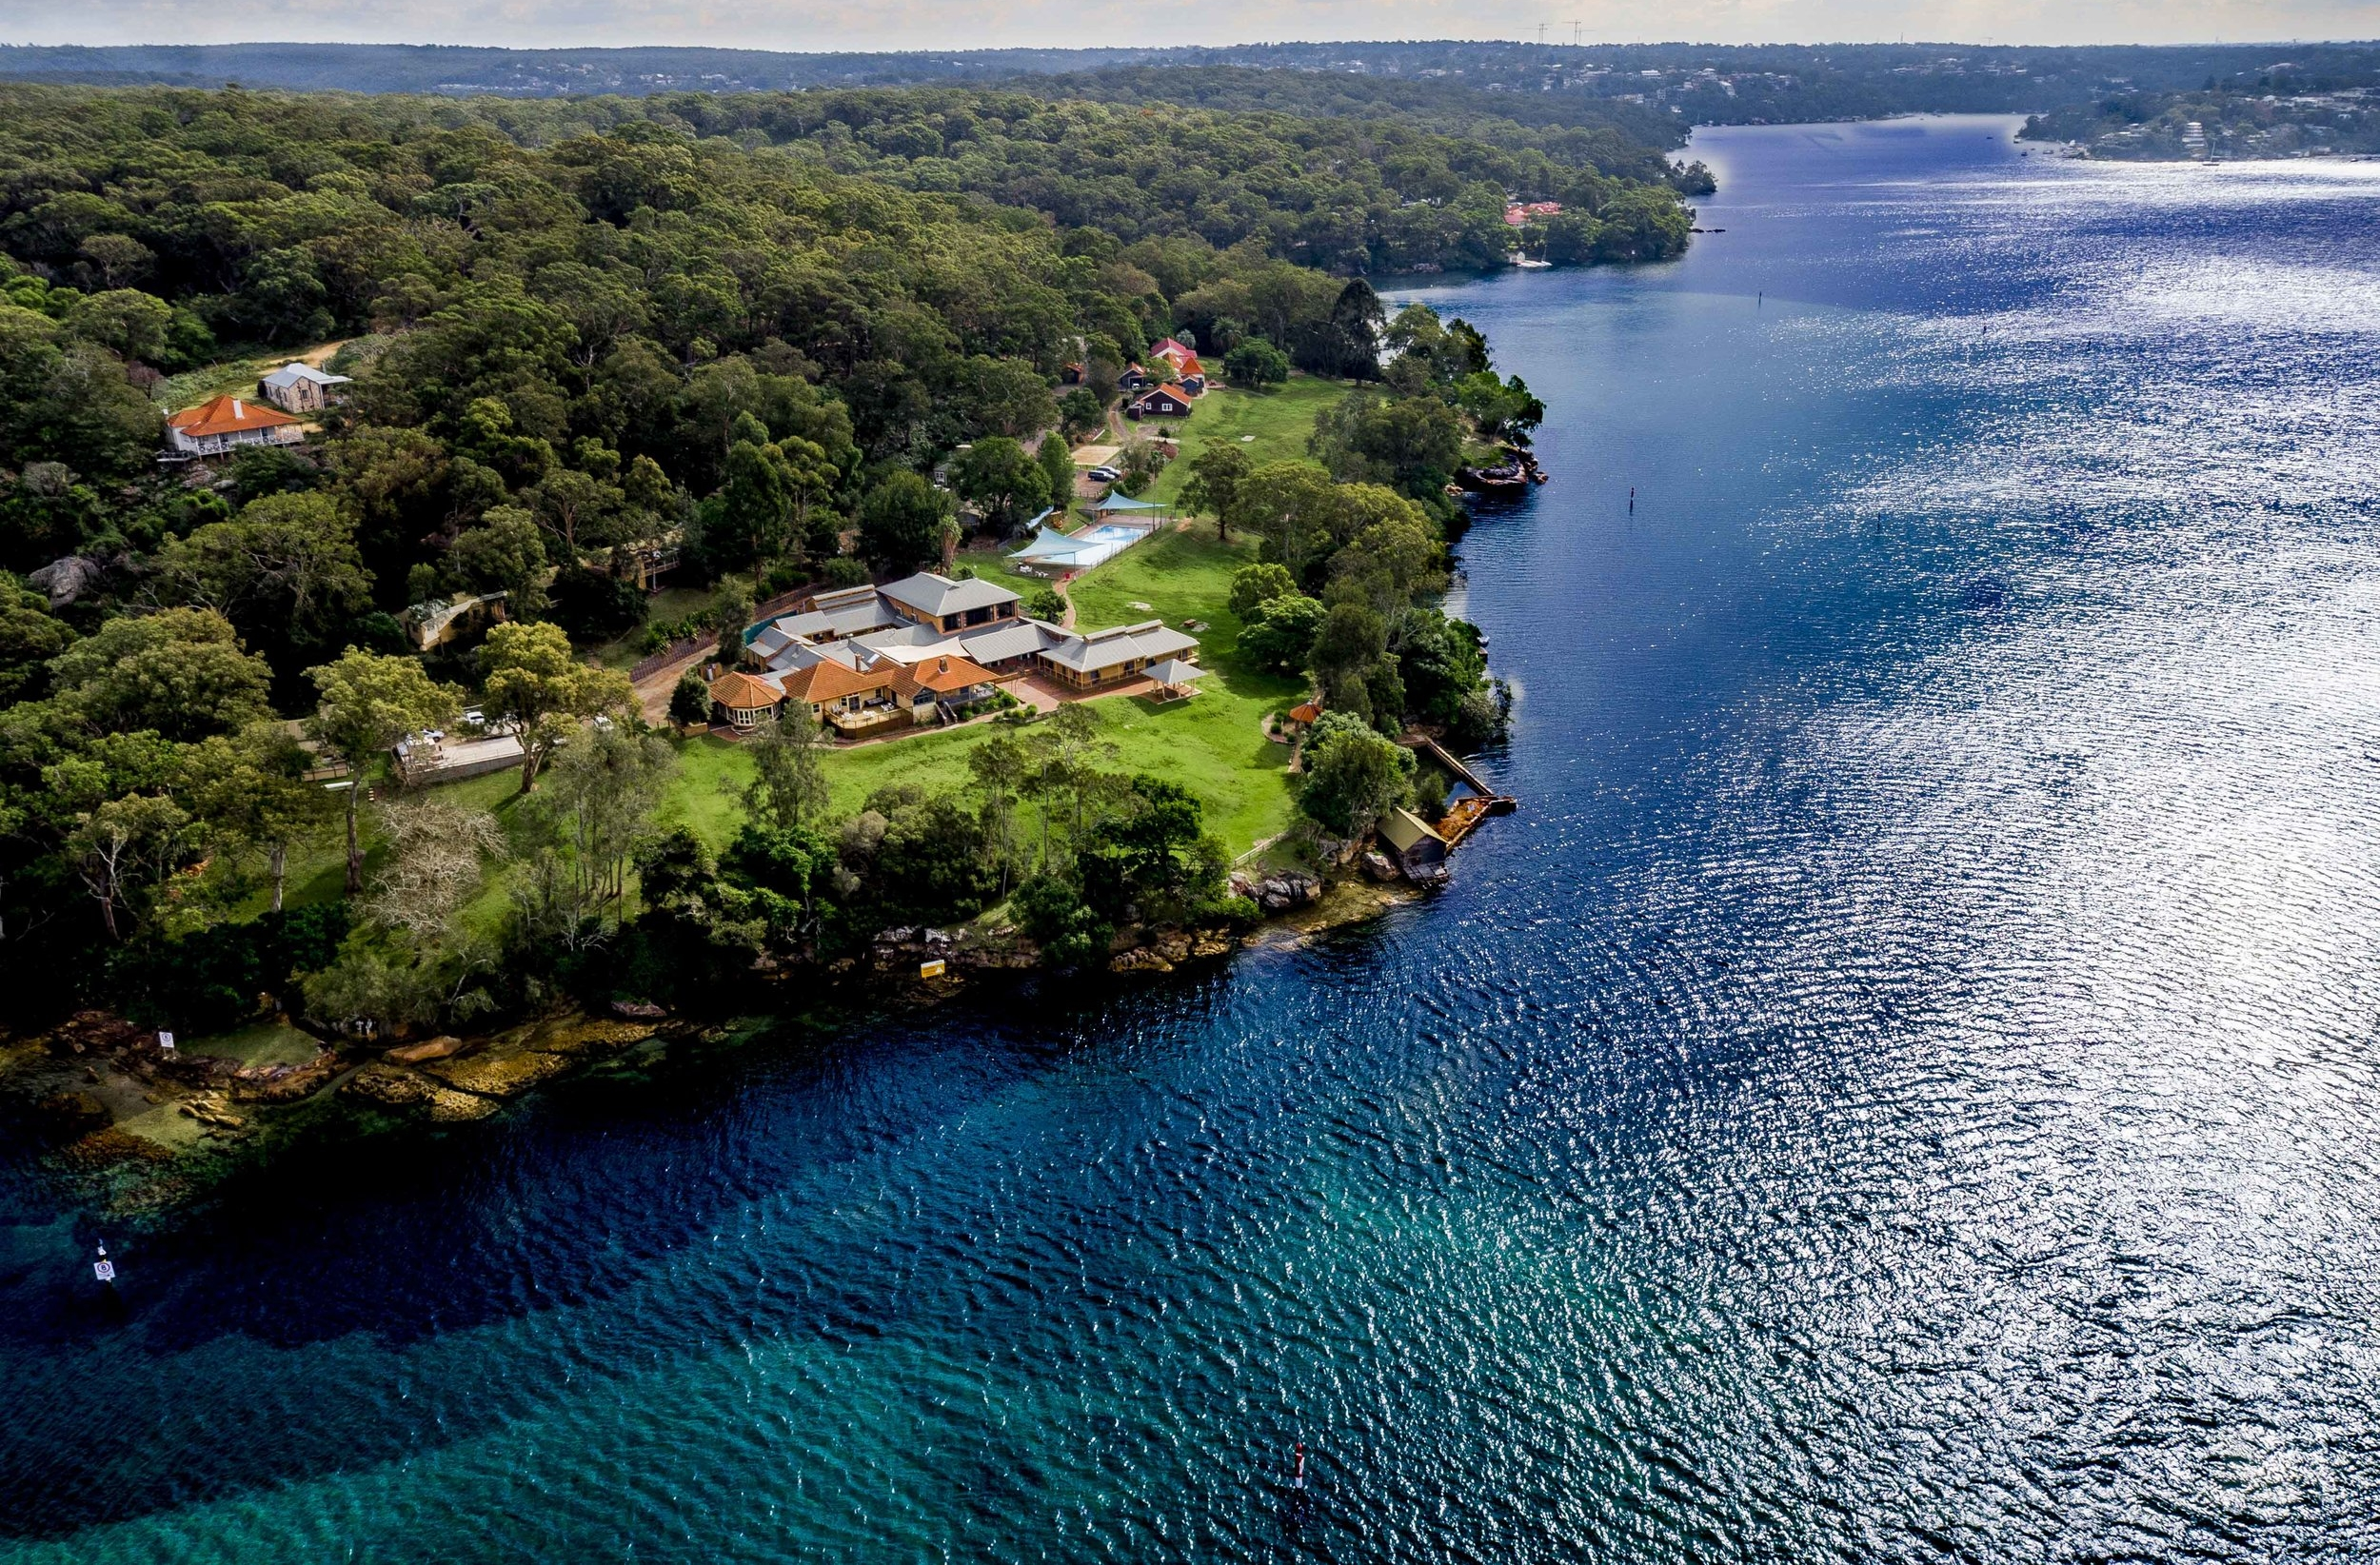 Rathane - This heritage building, with a beautiful renovated sandstone dining hall, looks straight down the Port Hacking River, all the way to the ocean.